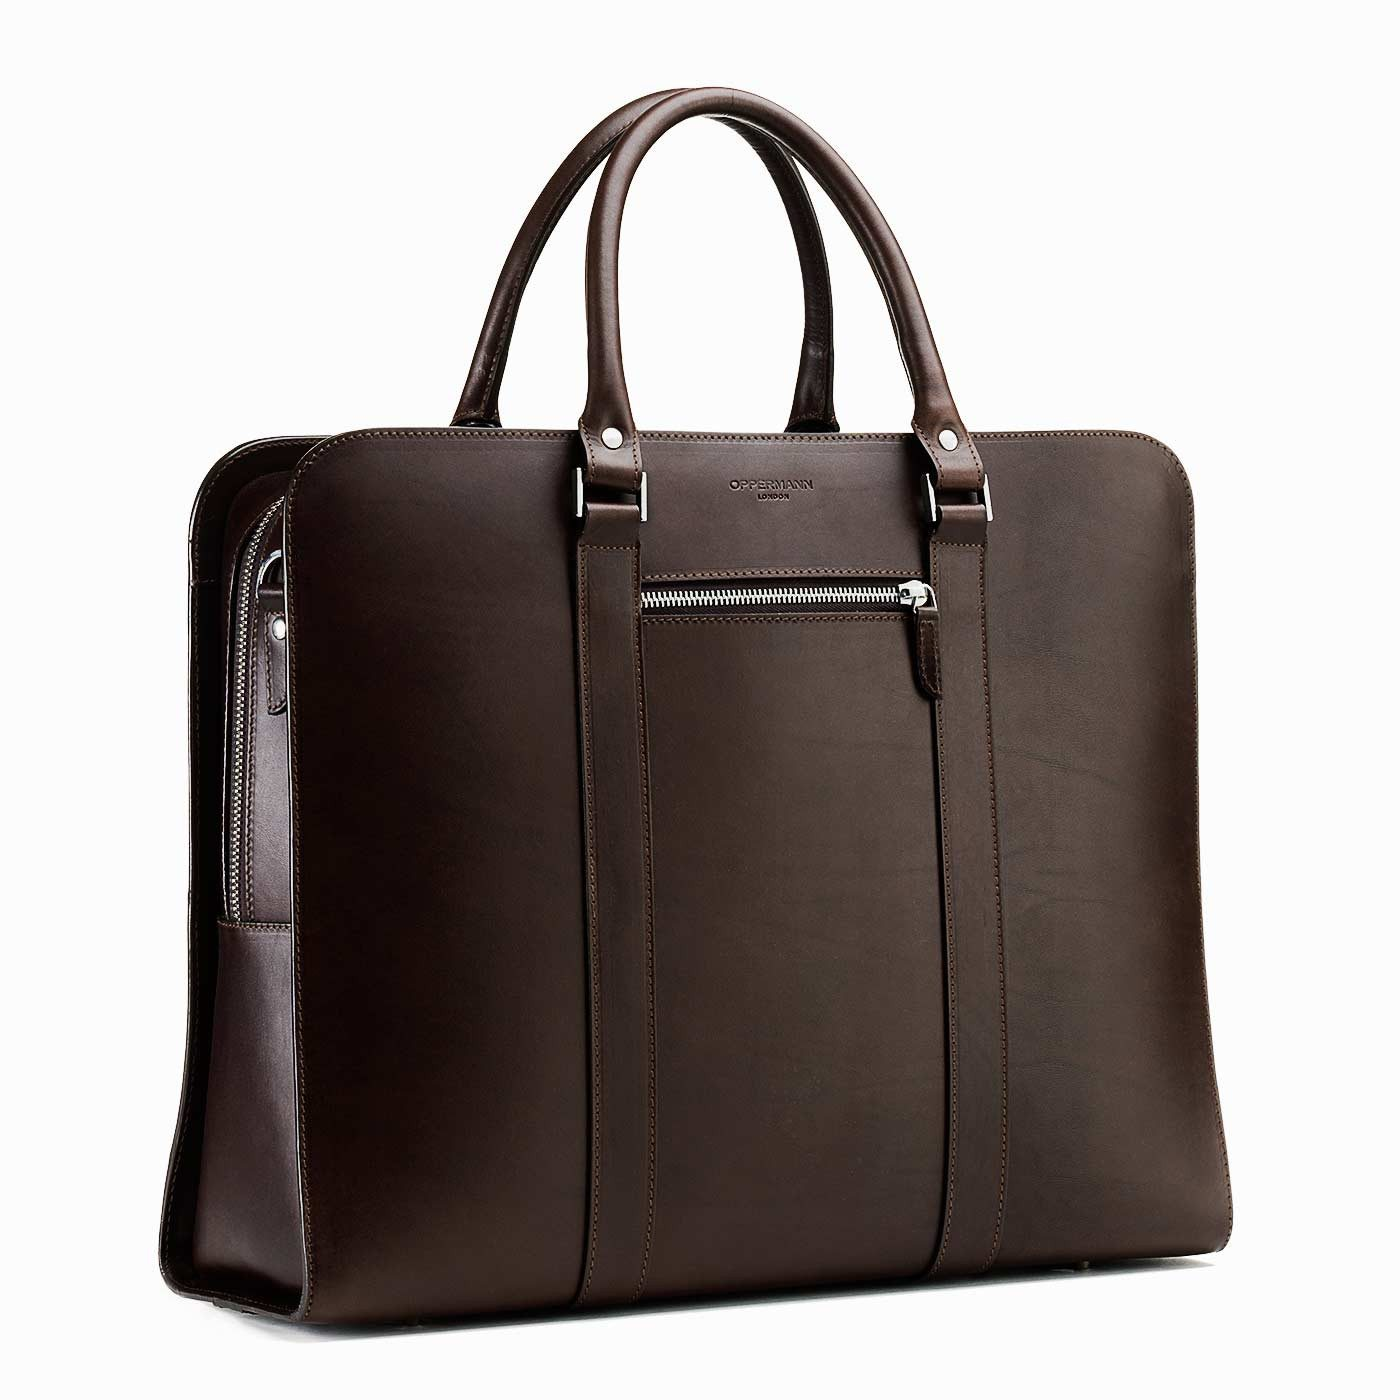 oppermann-25-hour-bag-palissy-chocolate-2